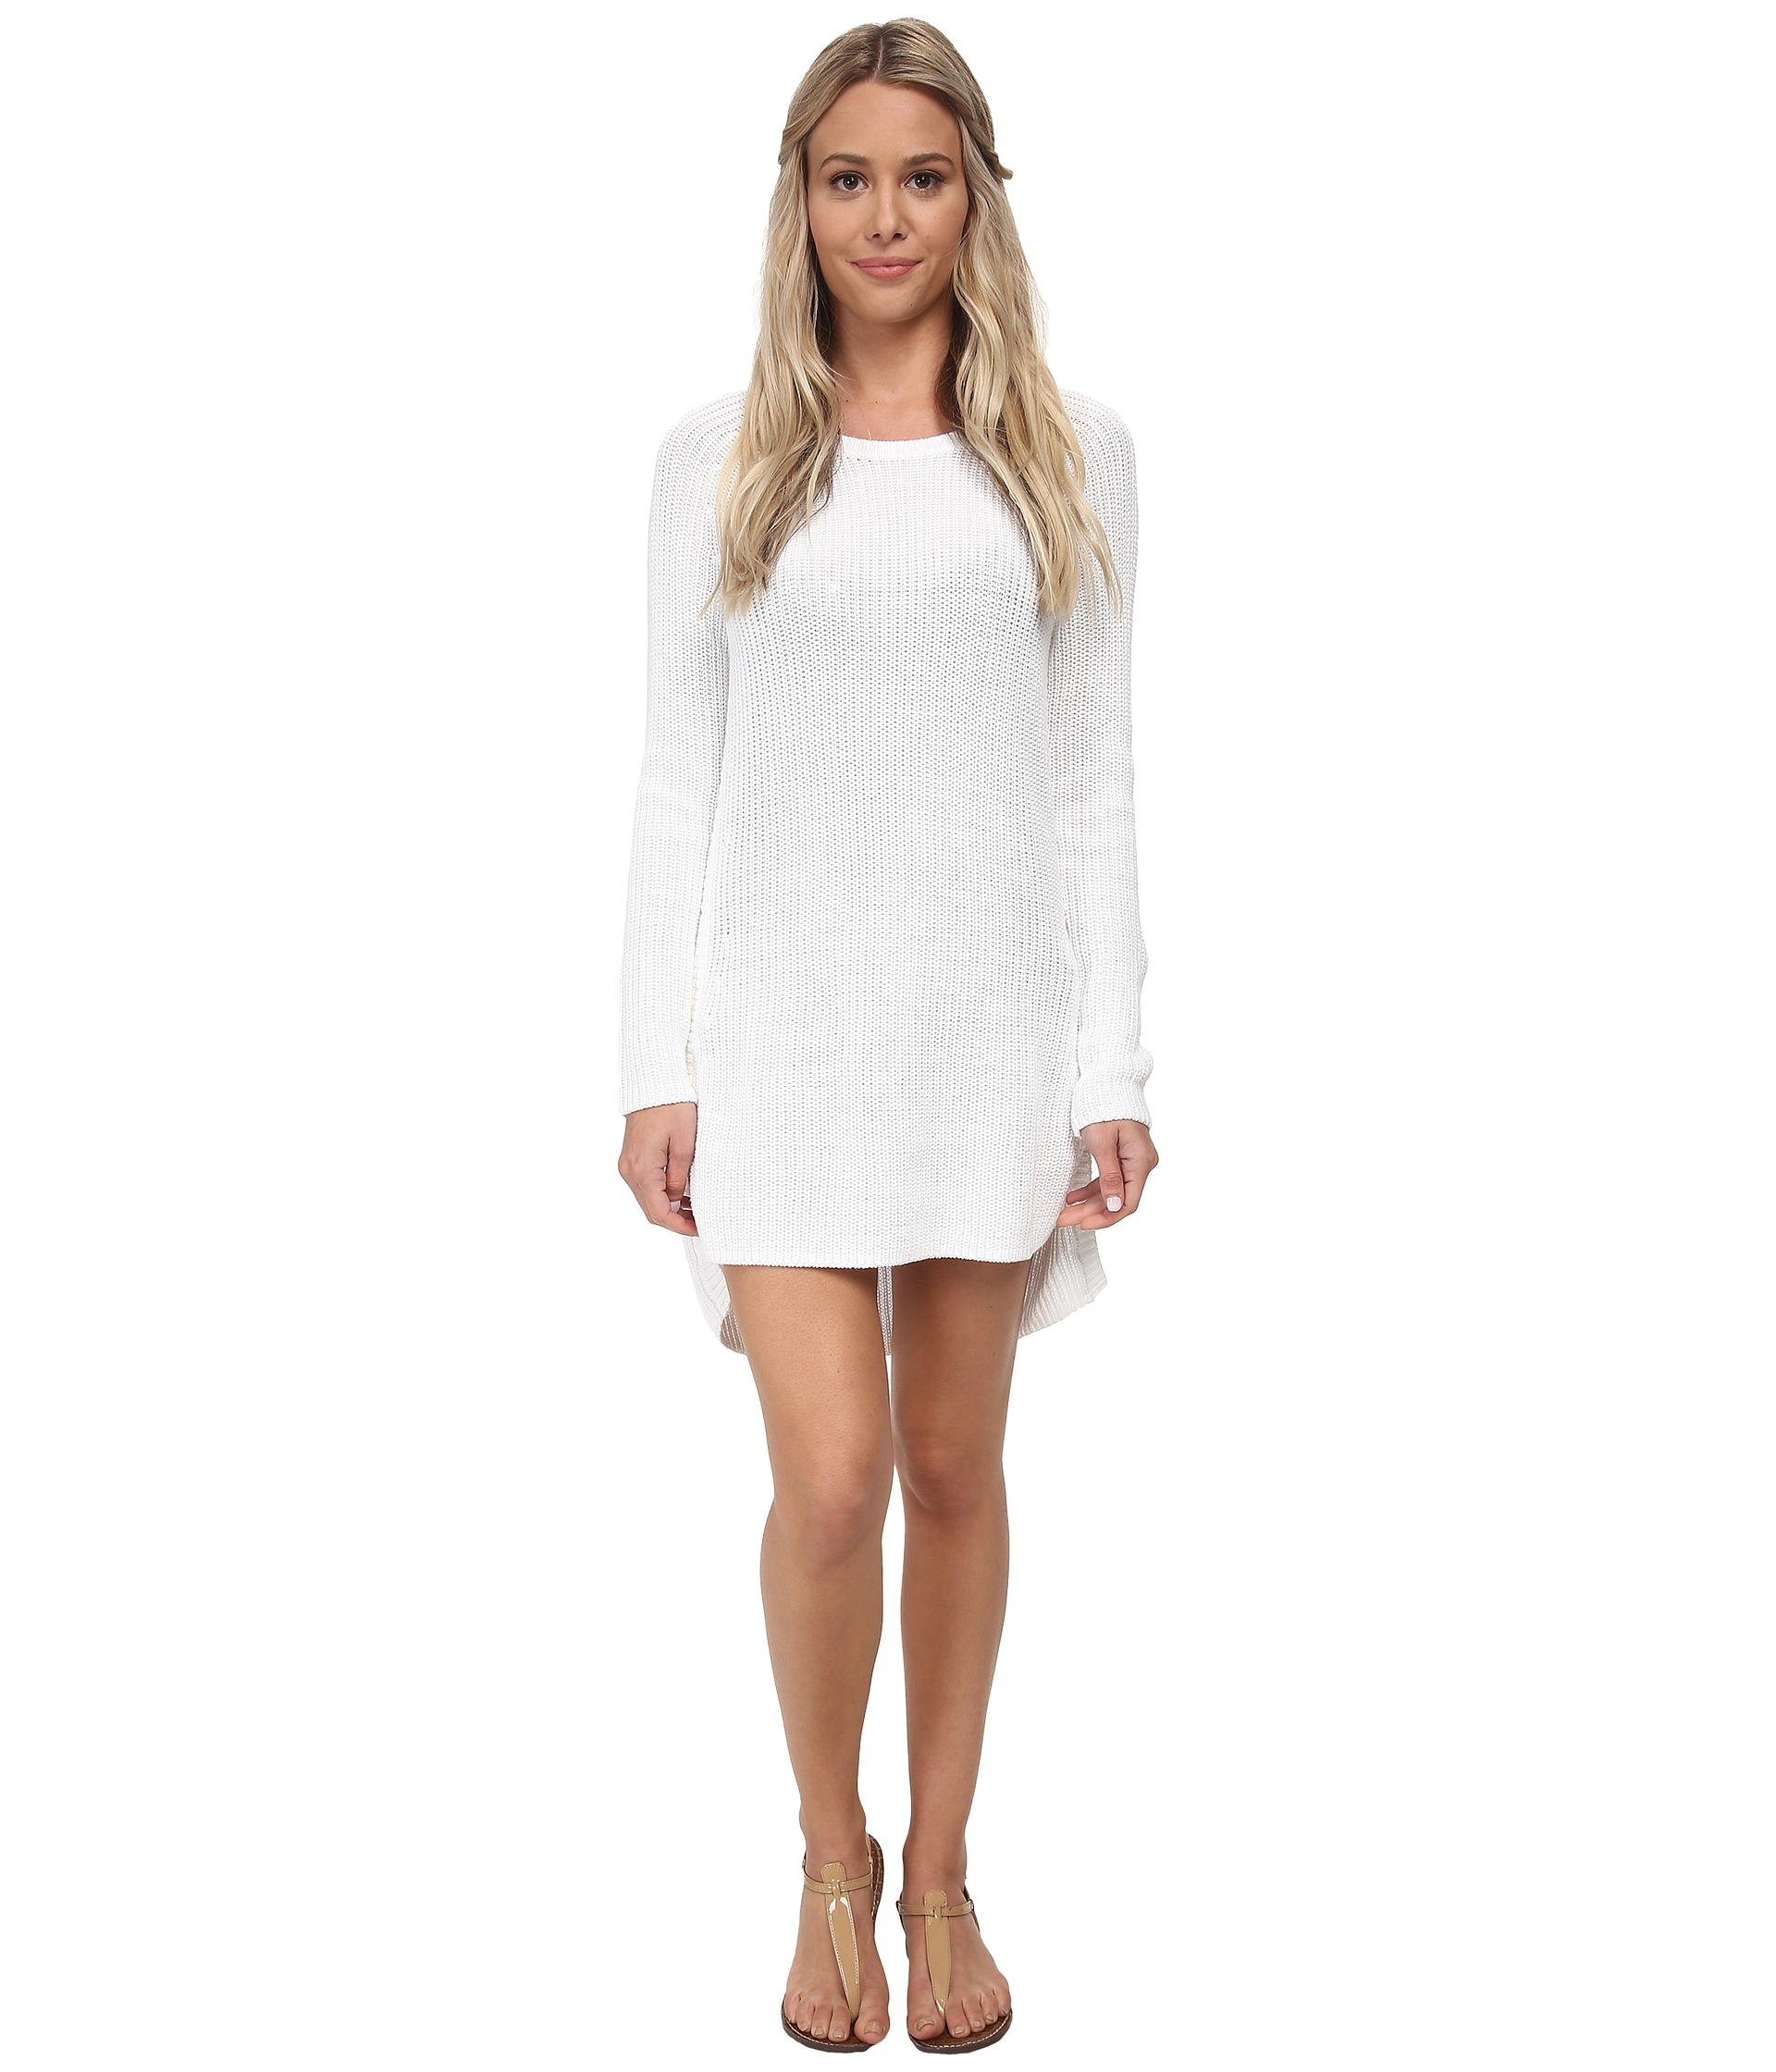 Tommy bahama Zipper Beach Sweater Cover-up in White | Lyst